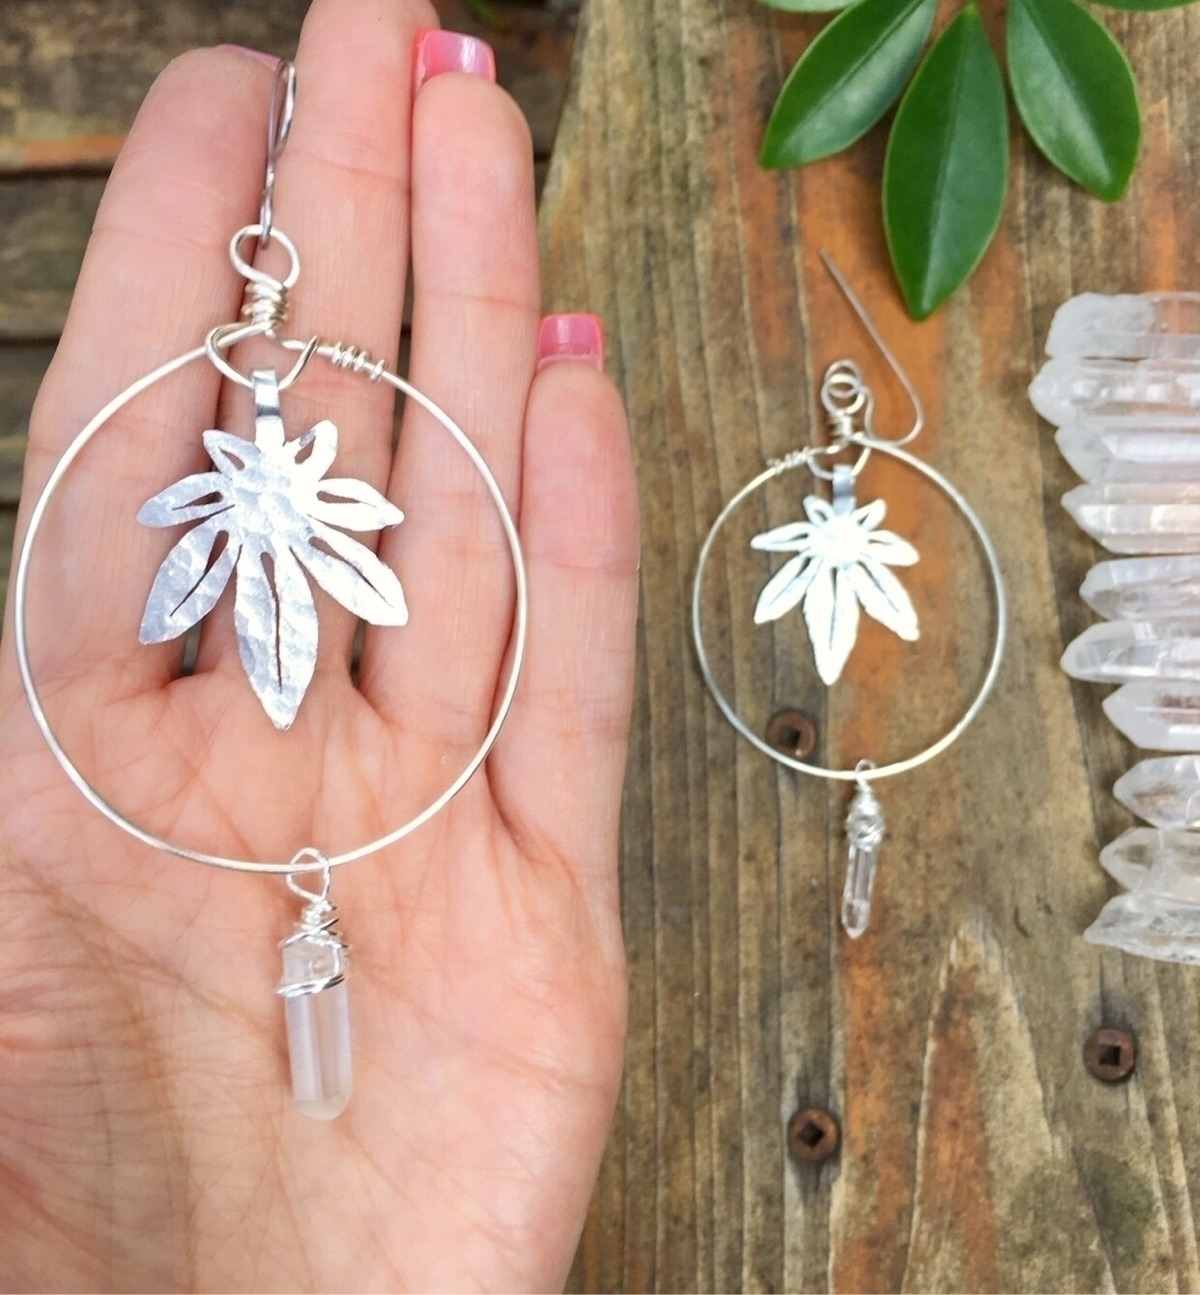 peek earrings adding shop hoops - asotojewelry | ello